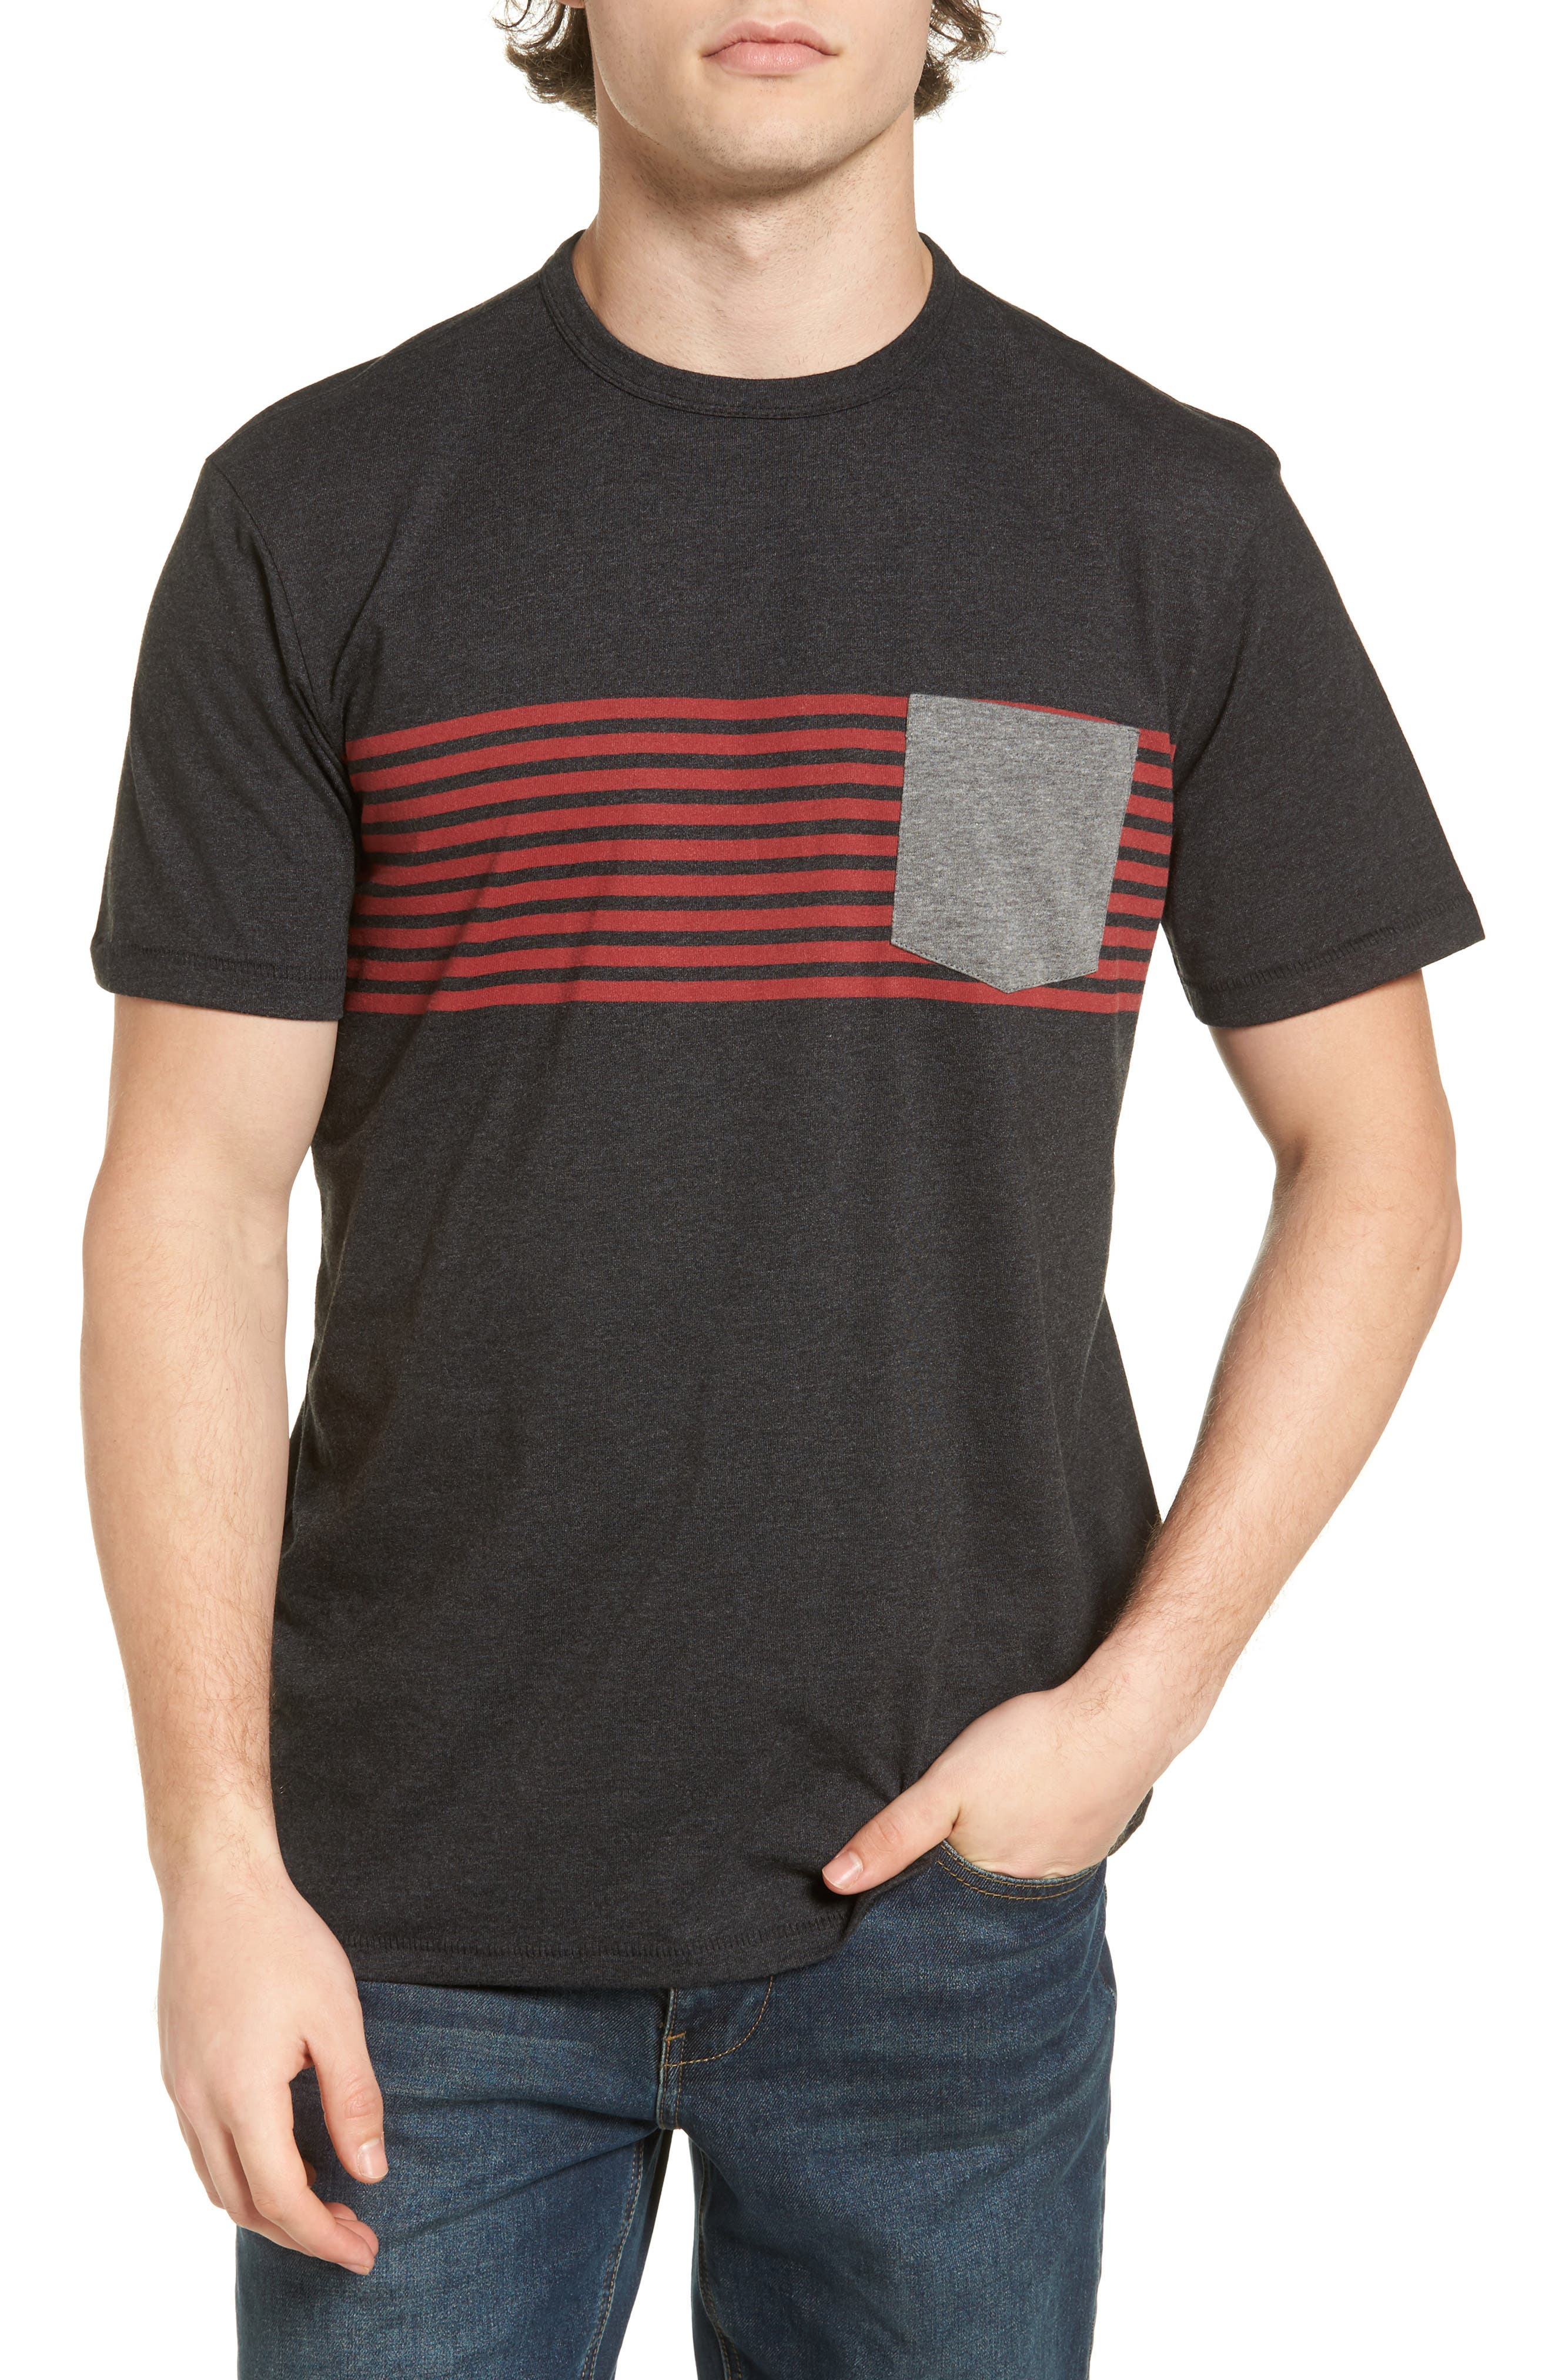 Alternate Image 1 Selected - O'Neill Rodgers Striped Pocket T-Shirt